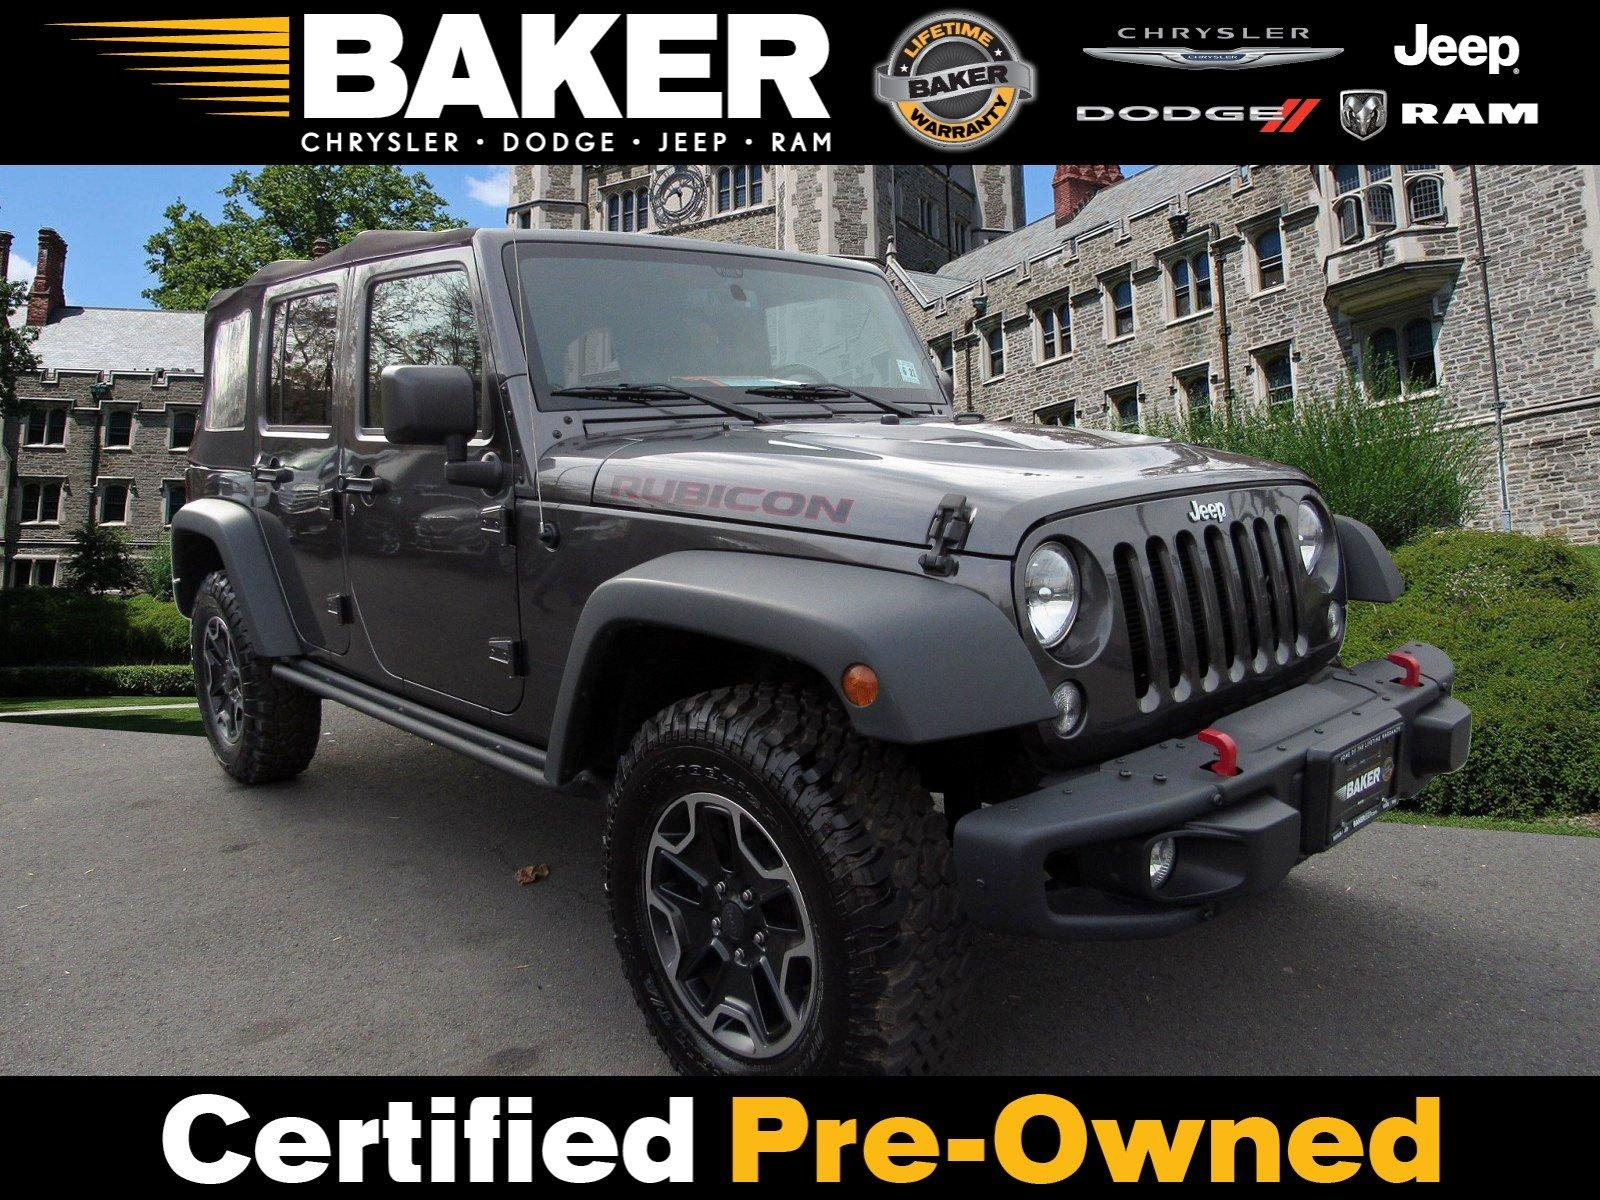 Used 2016 Jeep Wrangler Unlimited Rubicon Hard Rock for sale Sold at Victory Lotus in Princeton NJ 08540 1